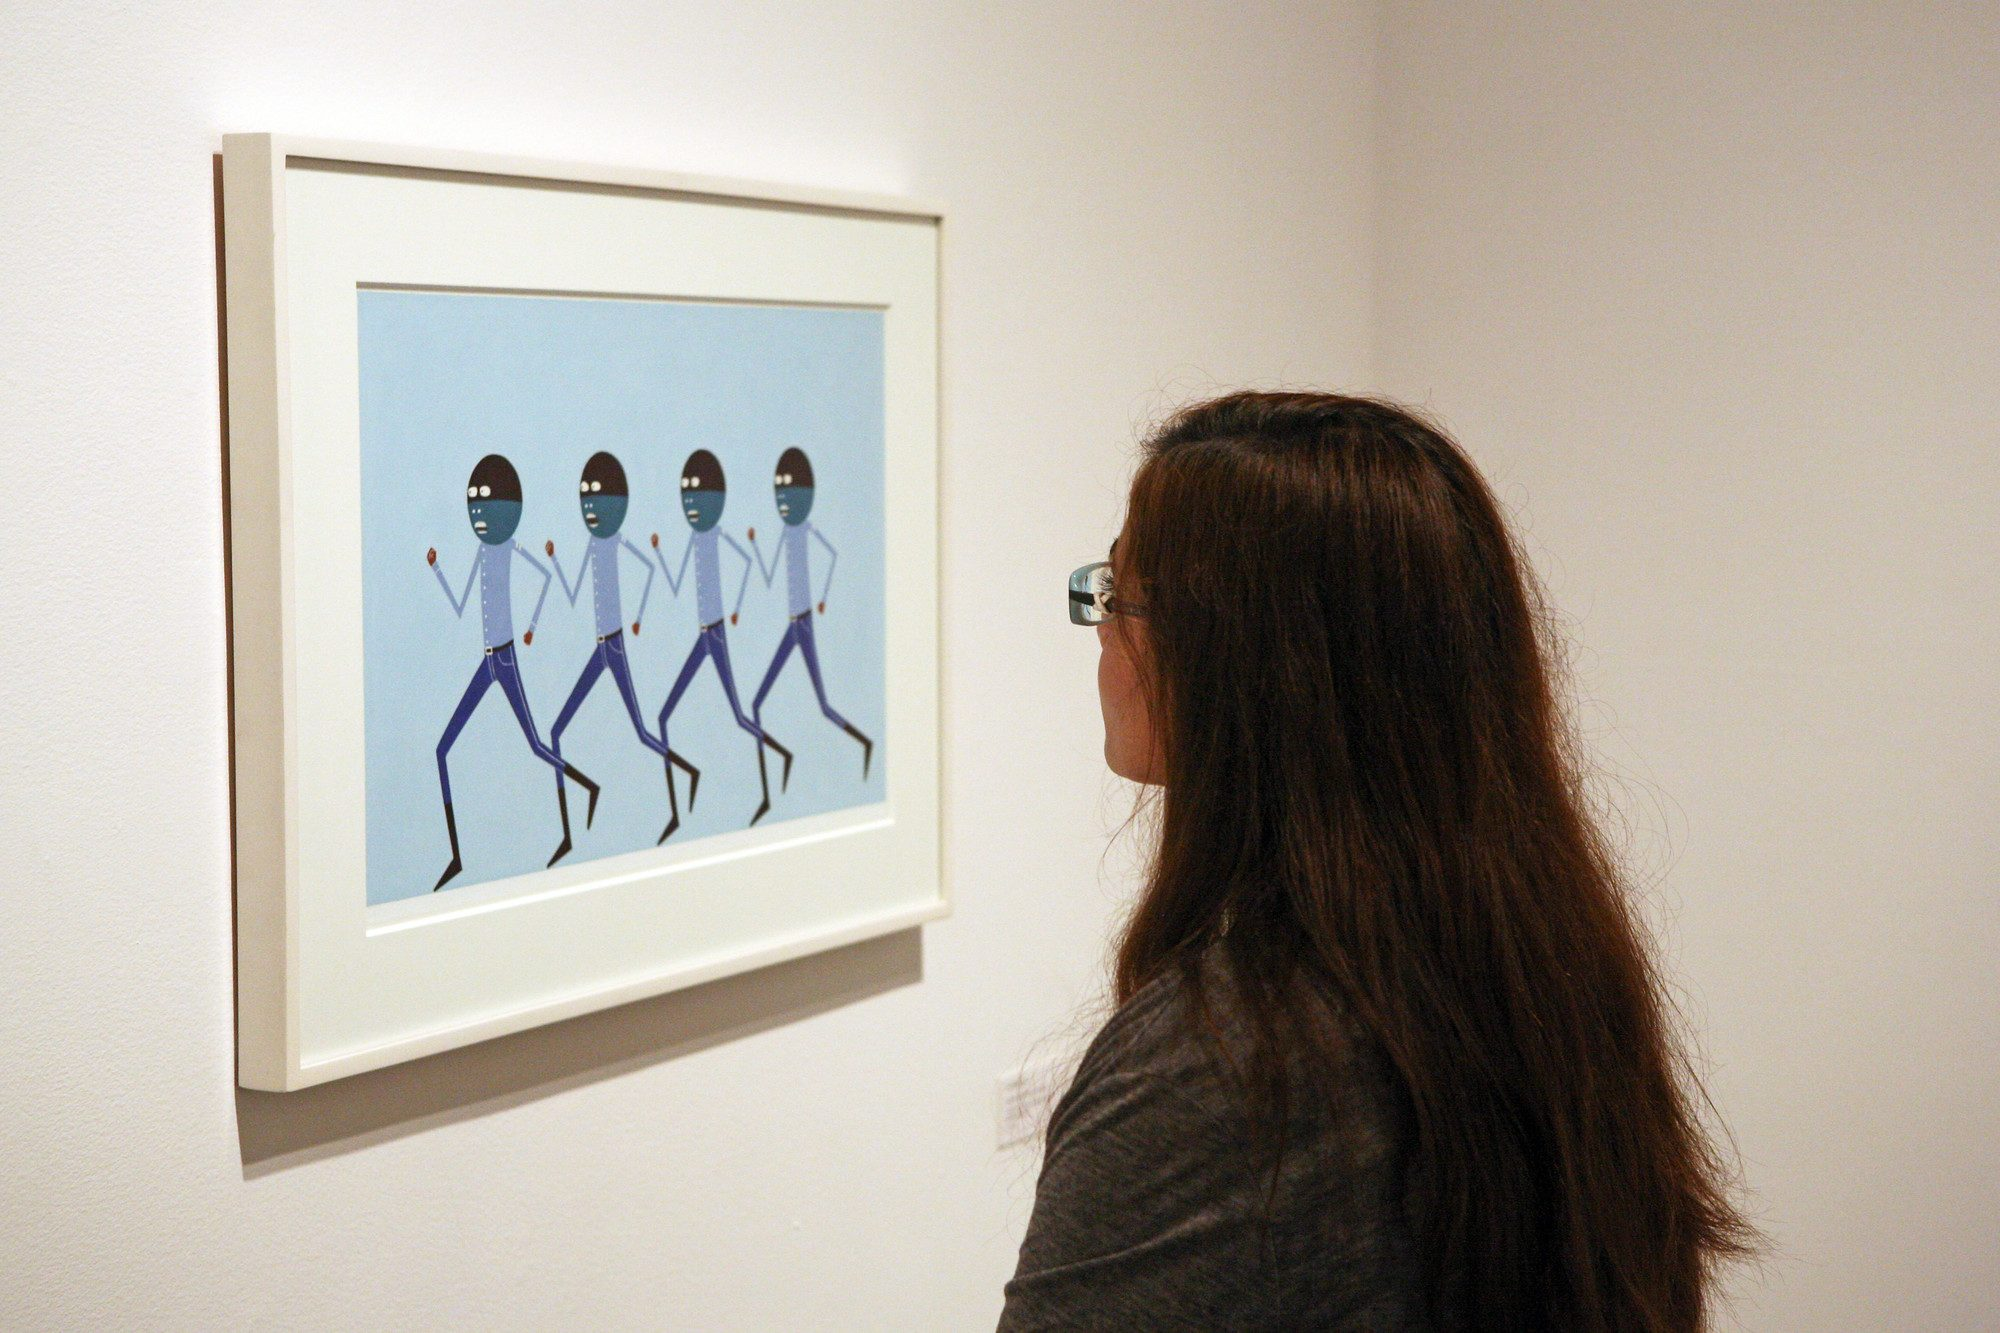 Installation view of Laylah Ali: The Greenheads Series with students from Exploring the Arts. Photo by Roman Iwasiwka.